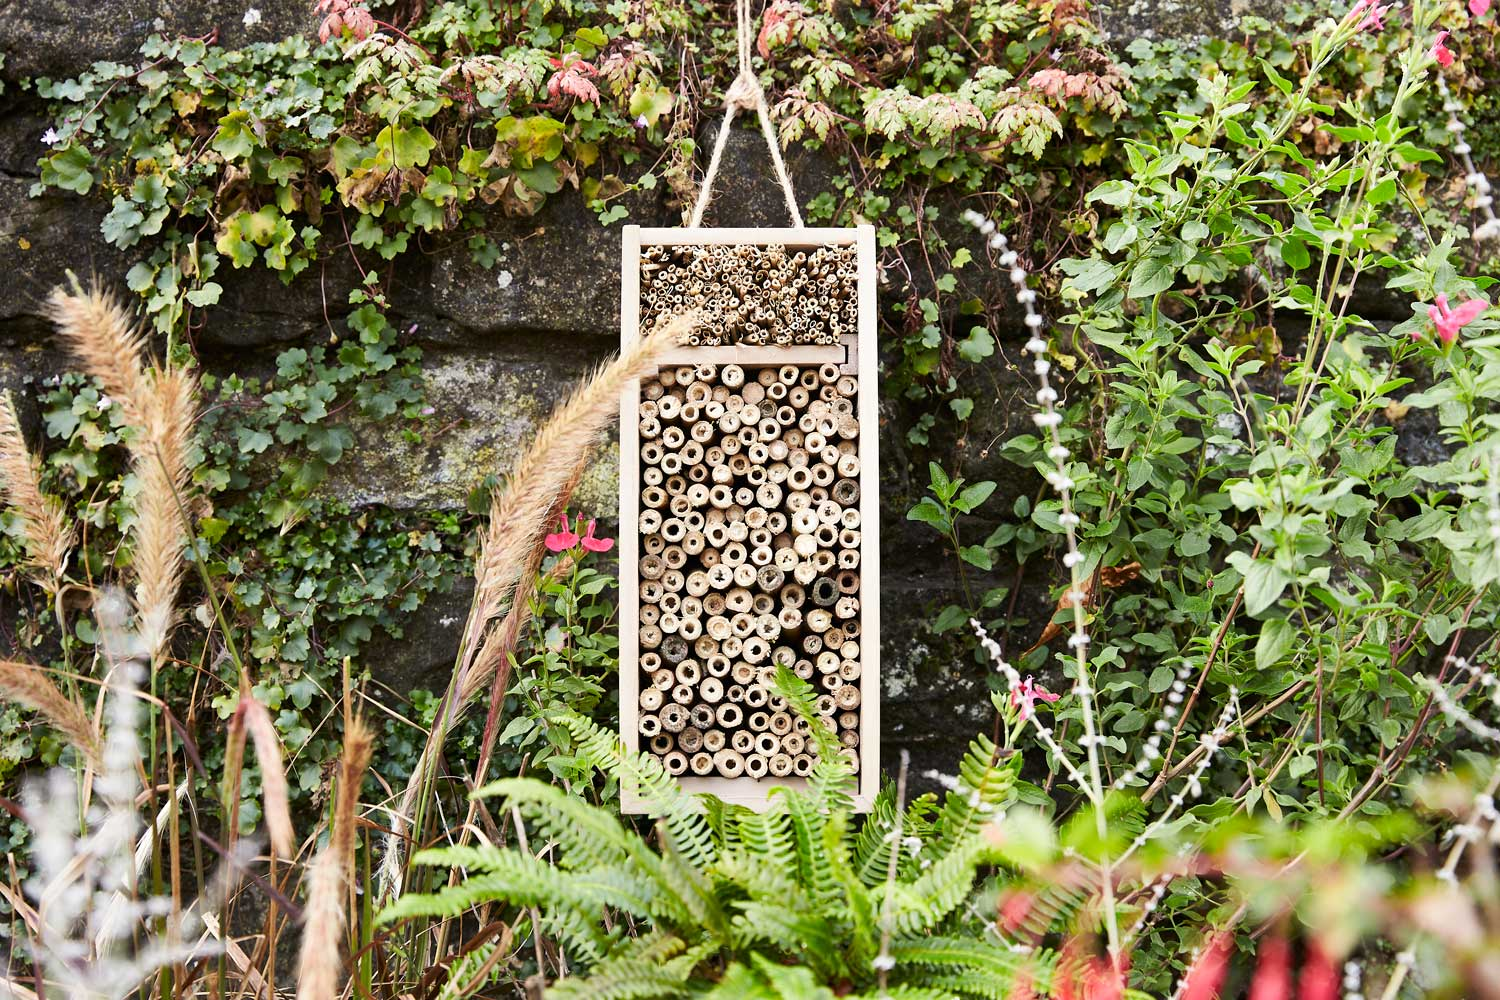 Progress Packaging Wooden Bird Box Insect Hotel Drinks Gin Spirits Liquor Fsc Approved Recycled Biodegradable Reusable Upcycling Responsibly Sourced Eco Friendly Environmentally Friendly 4